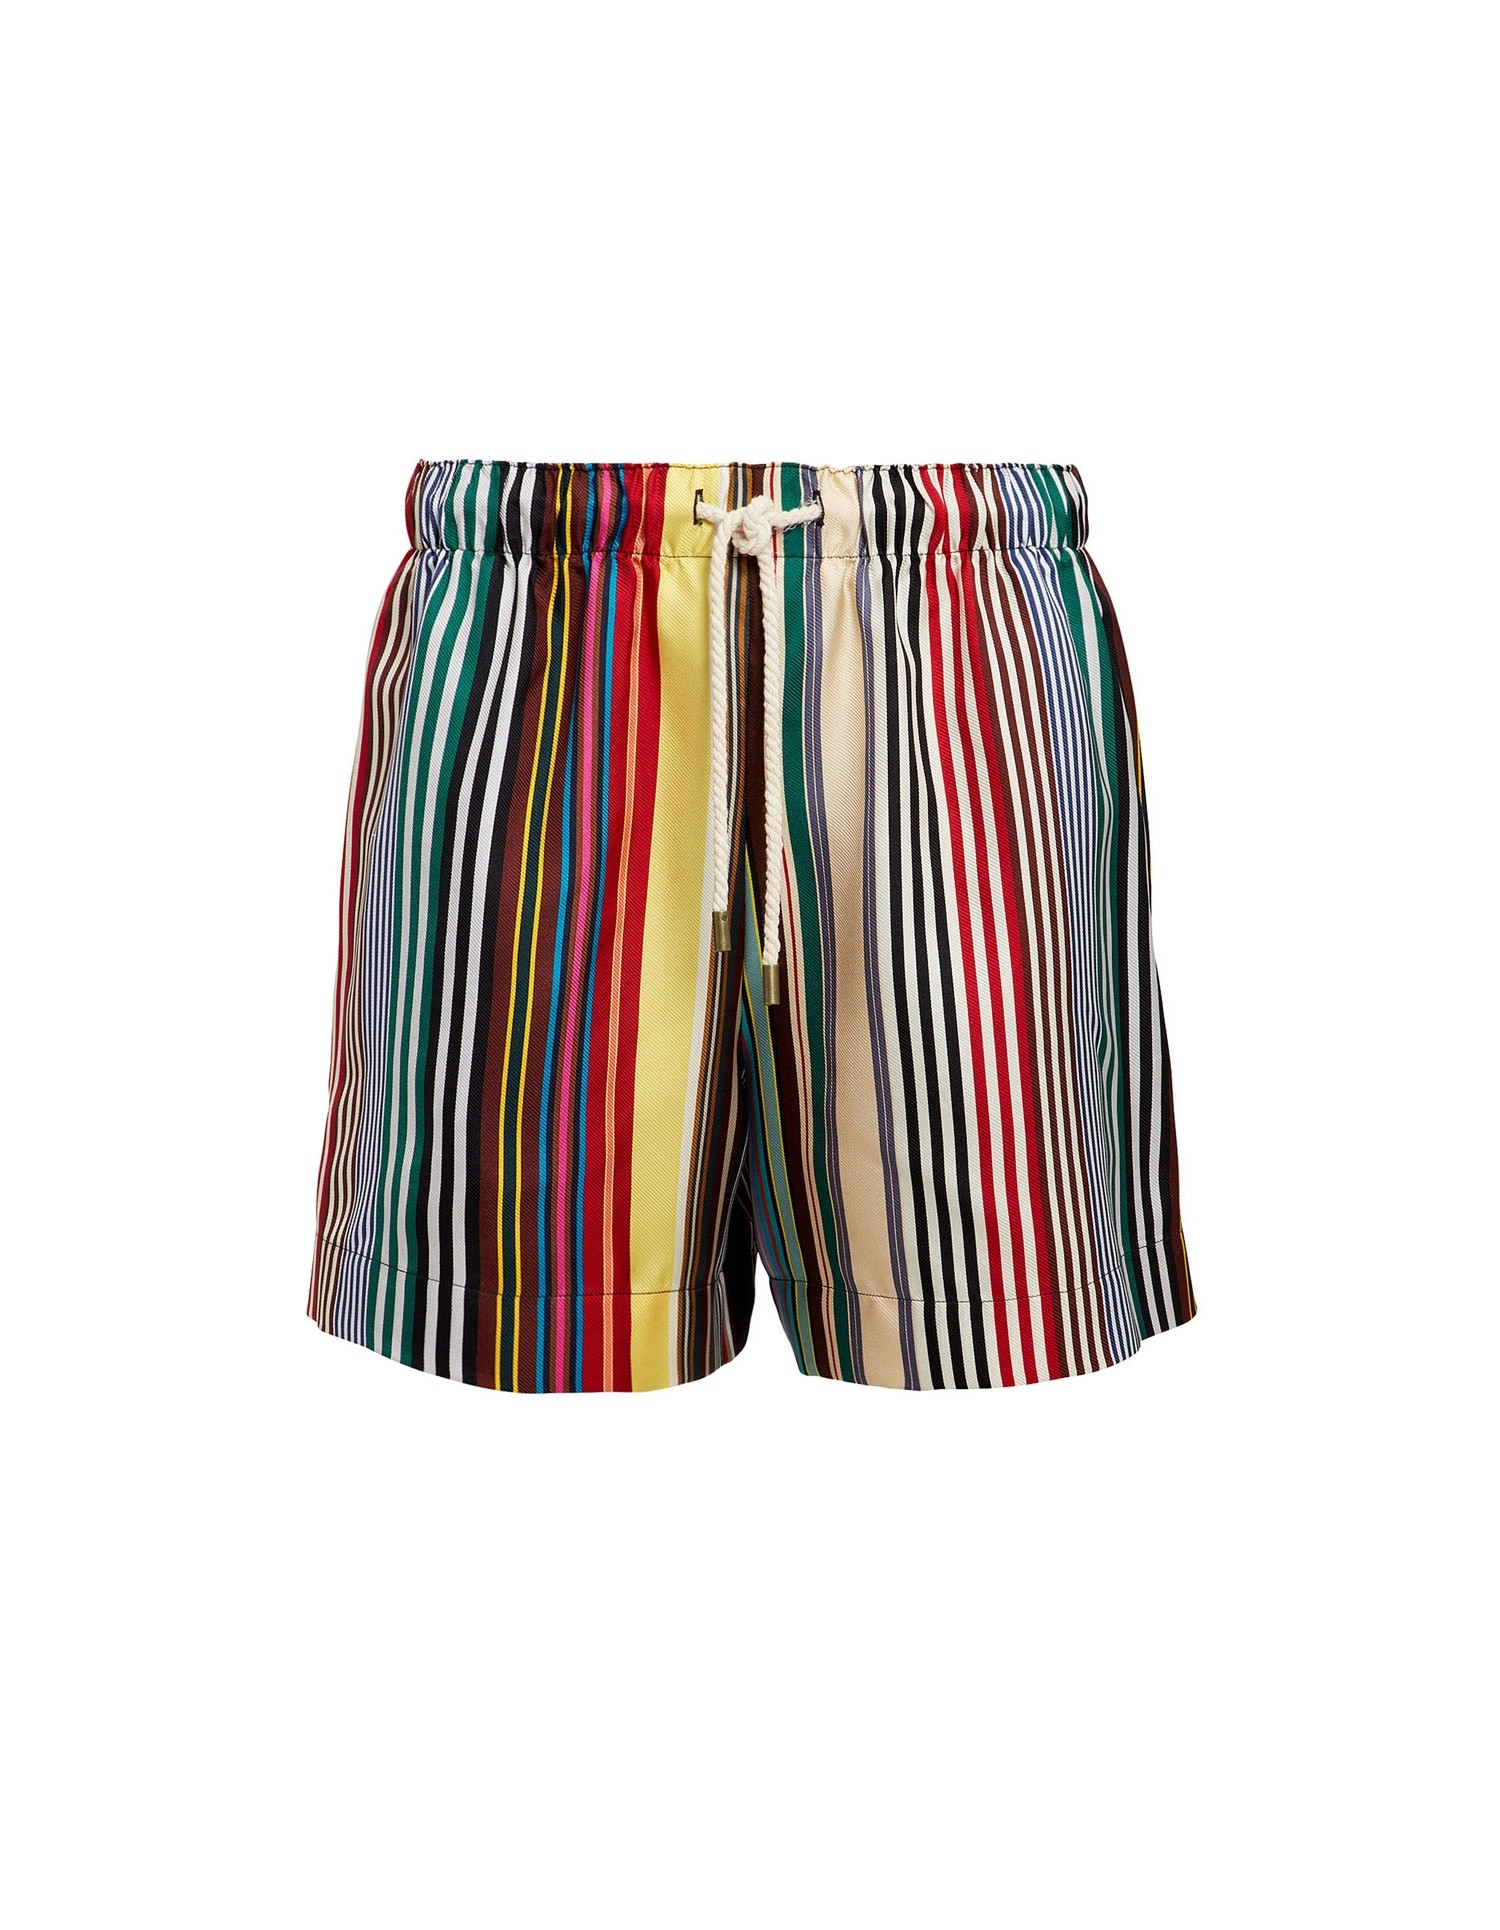 Monse Women's Rainbow Mid-Length Shorts Front